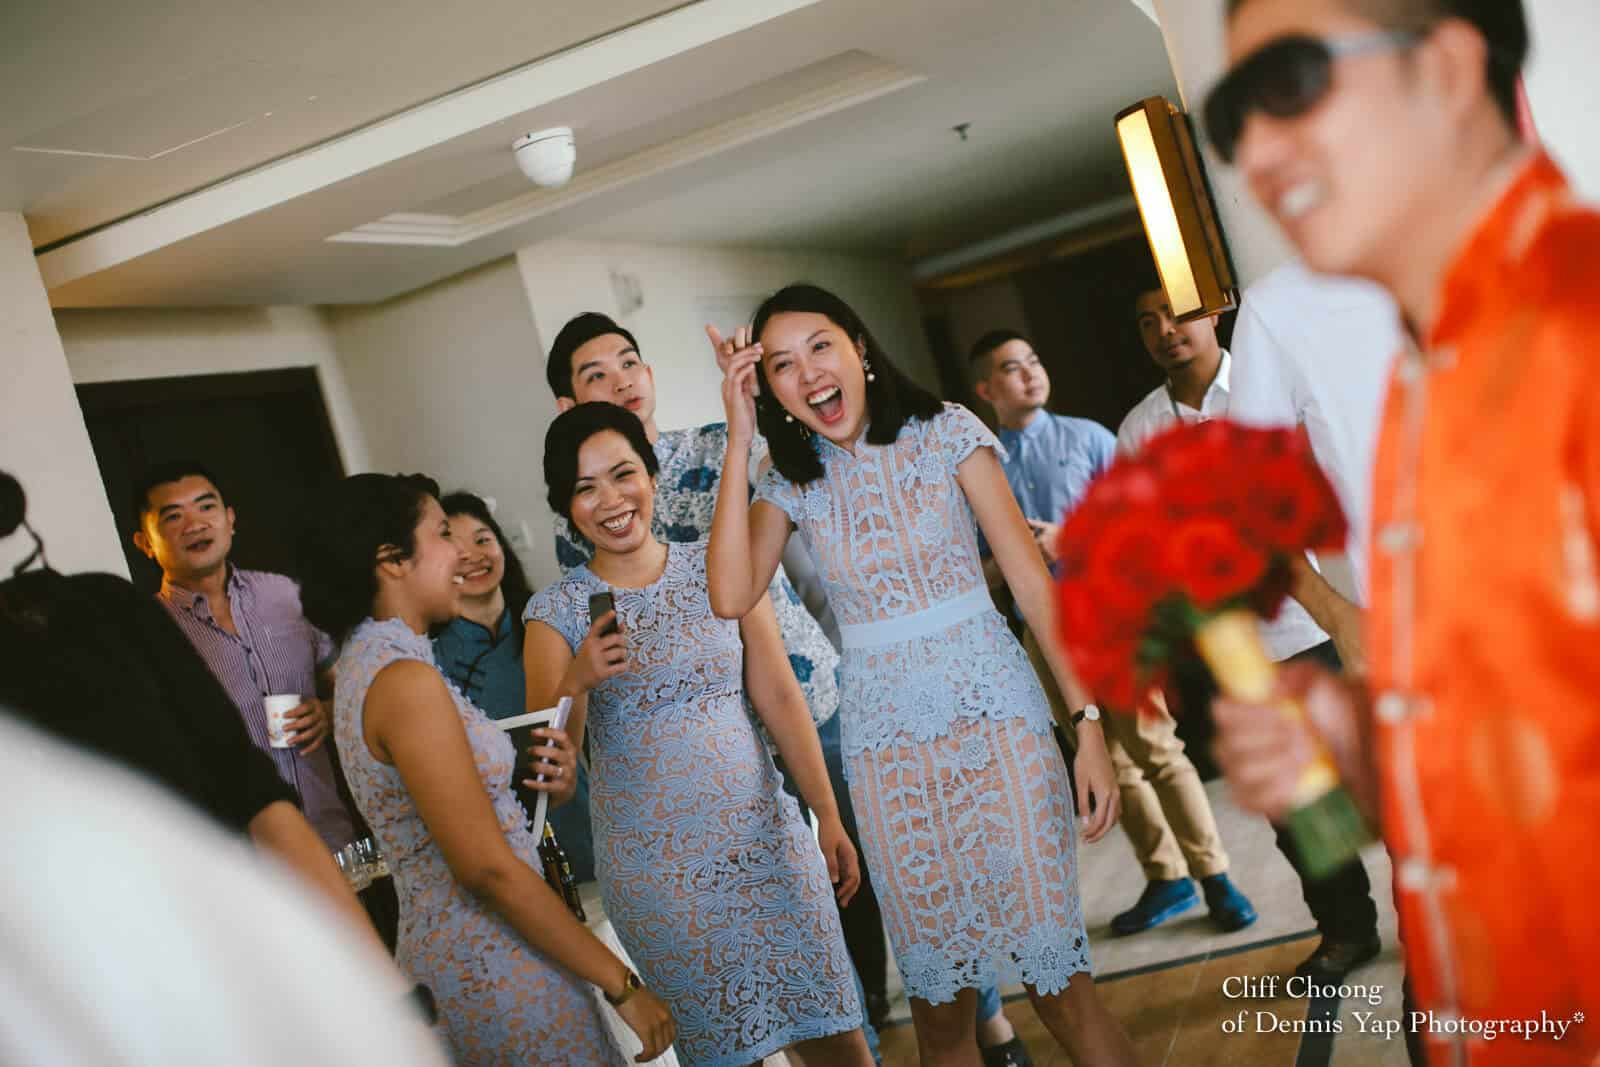 Wedding Day in Kota Kinabalu Sabah Malaysia Shangri-La Tanjung Aru Resort and Spa Cliff Choong Photography chinese gate crashing game